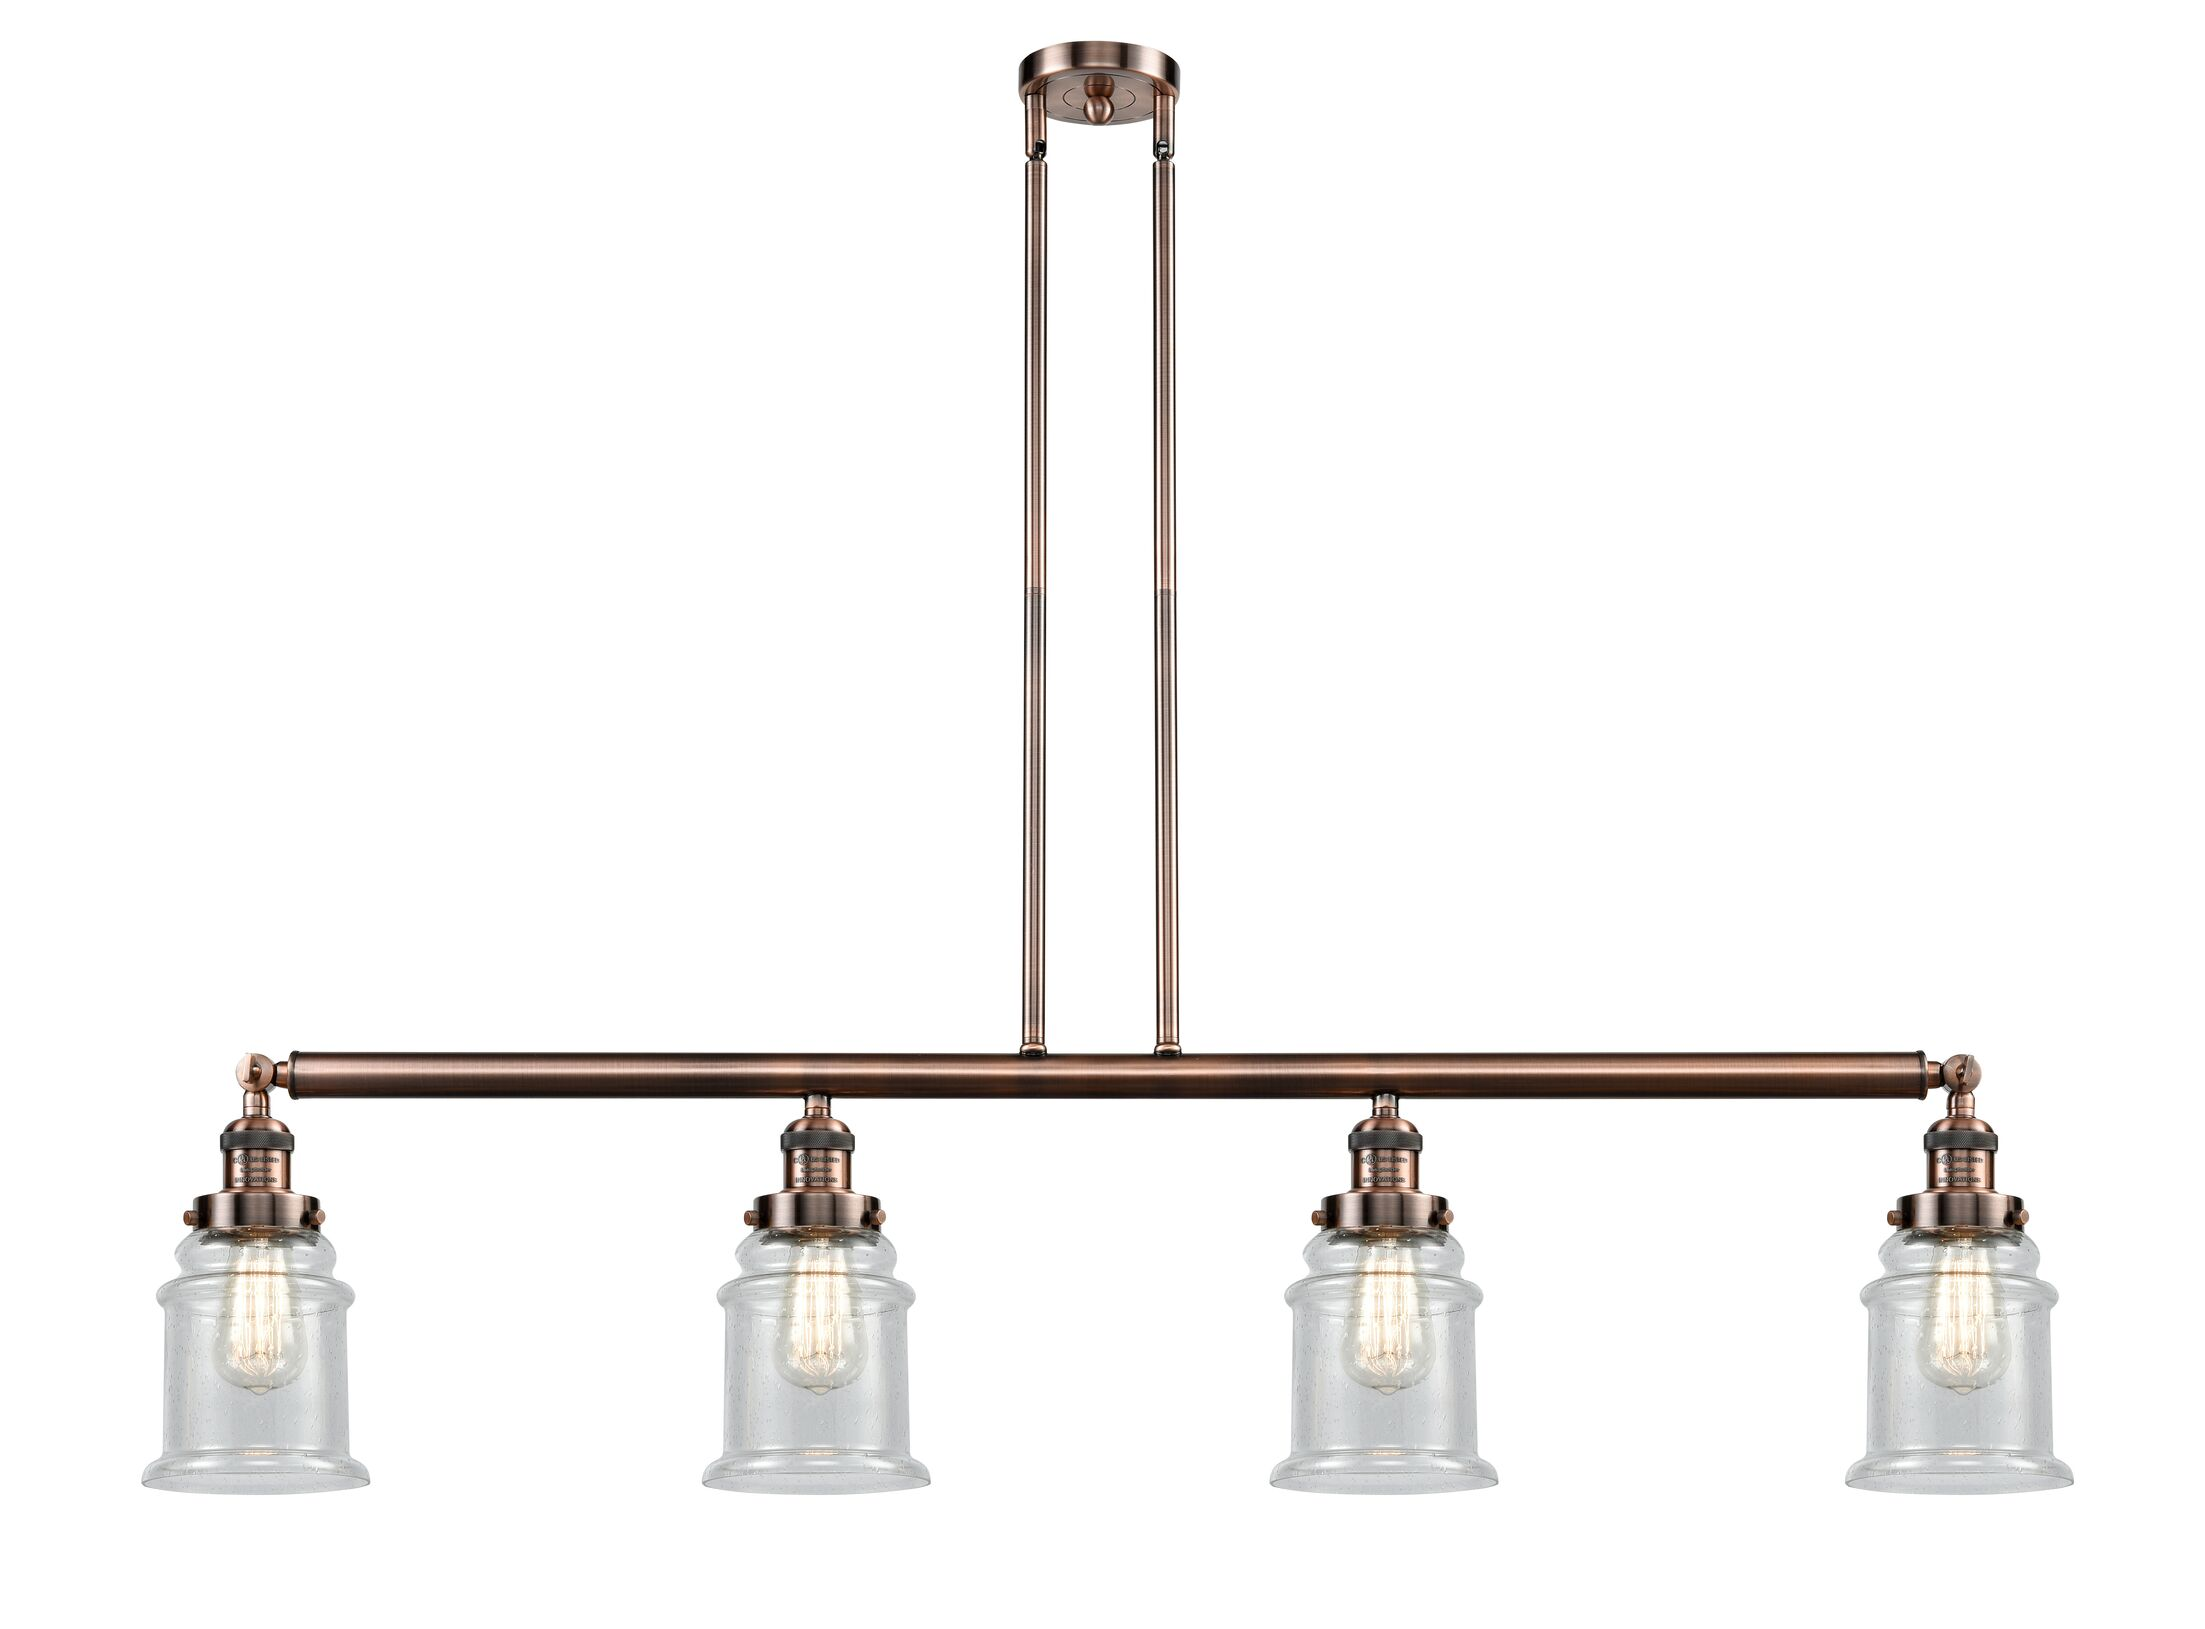 Greeley 4-Light Kitchen Island Pendant Finish: Antique Brass, Shade Color: Clear, Bulb Type: LED